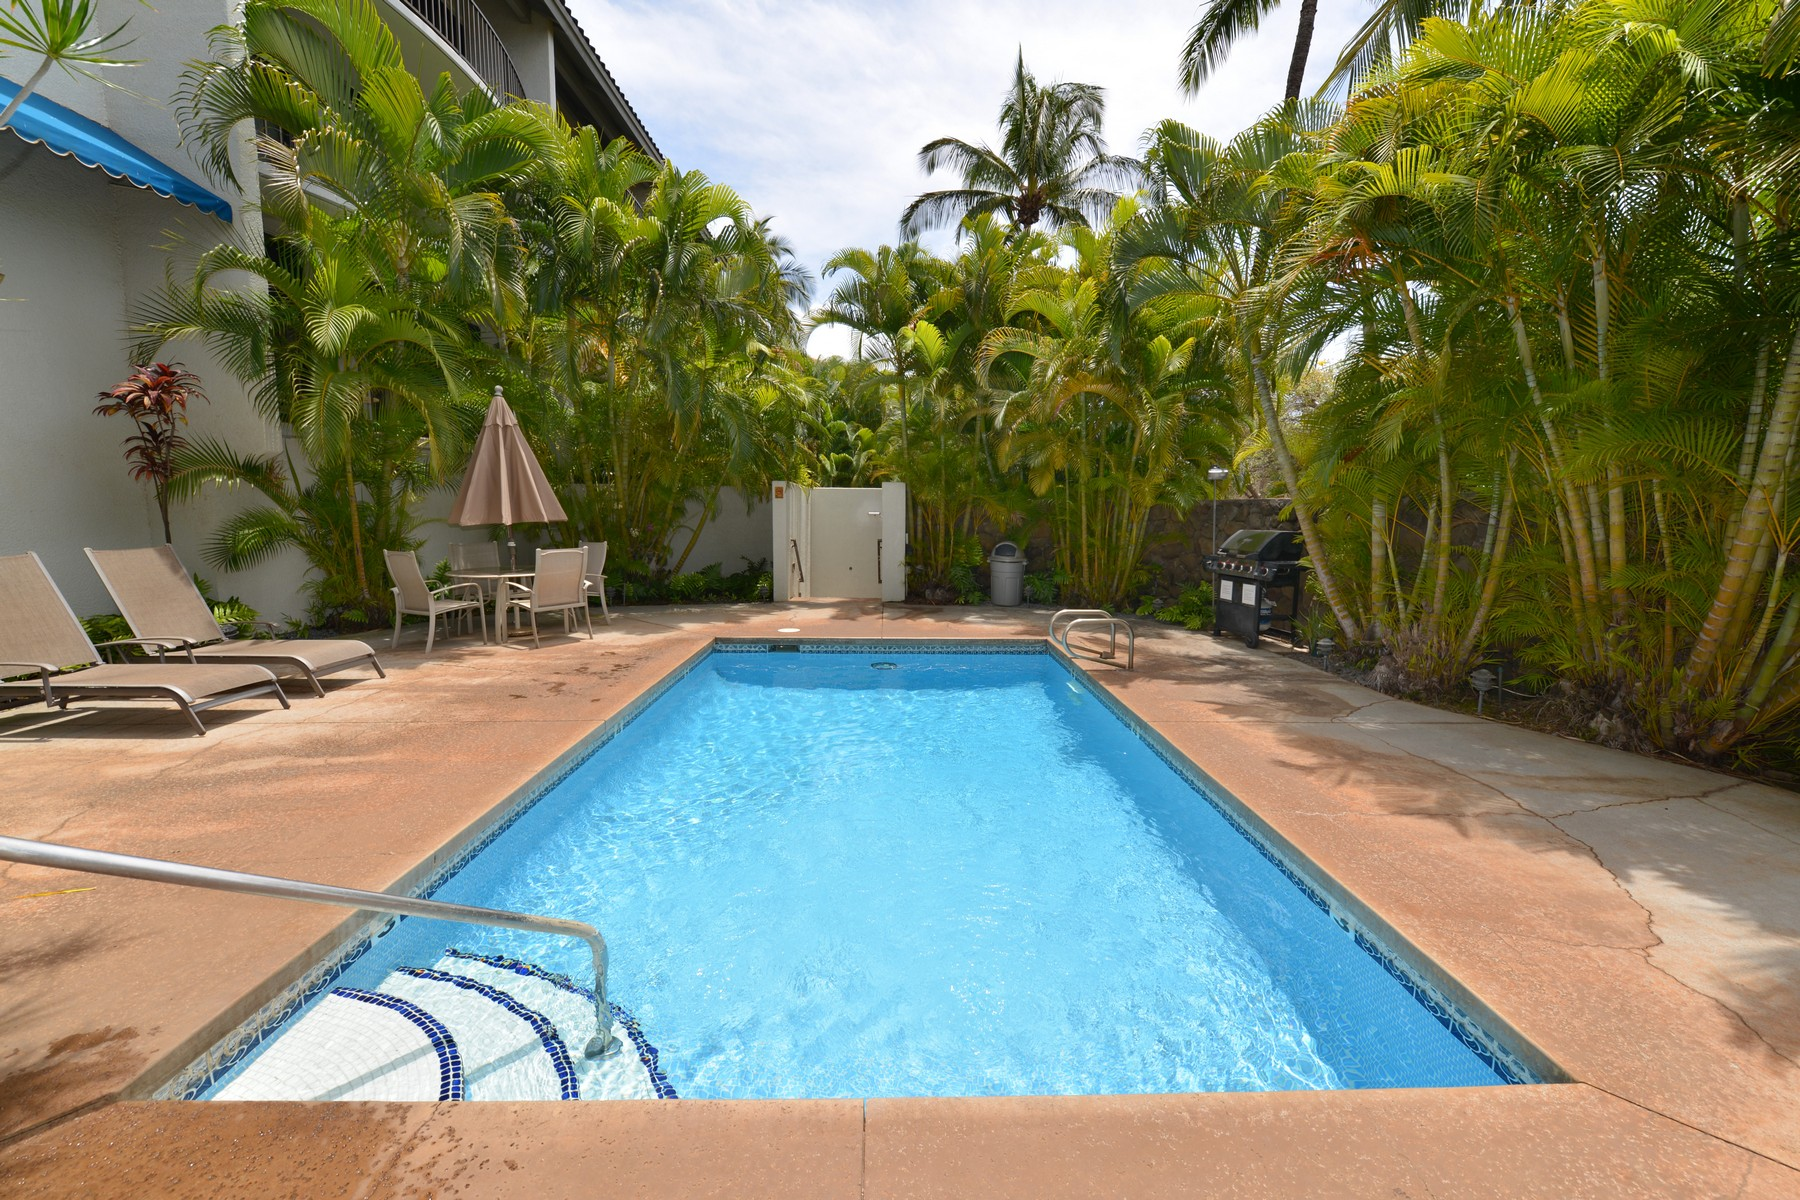 Condomínio para Venda às Gated Residential Condo in South Maui 2124 Awihi Place, Kamoa Views #210 Kihei, Havaí 96761 Estados Unidos